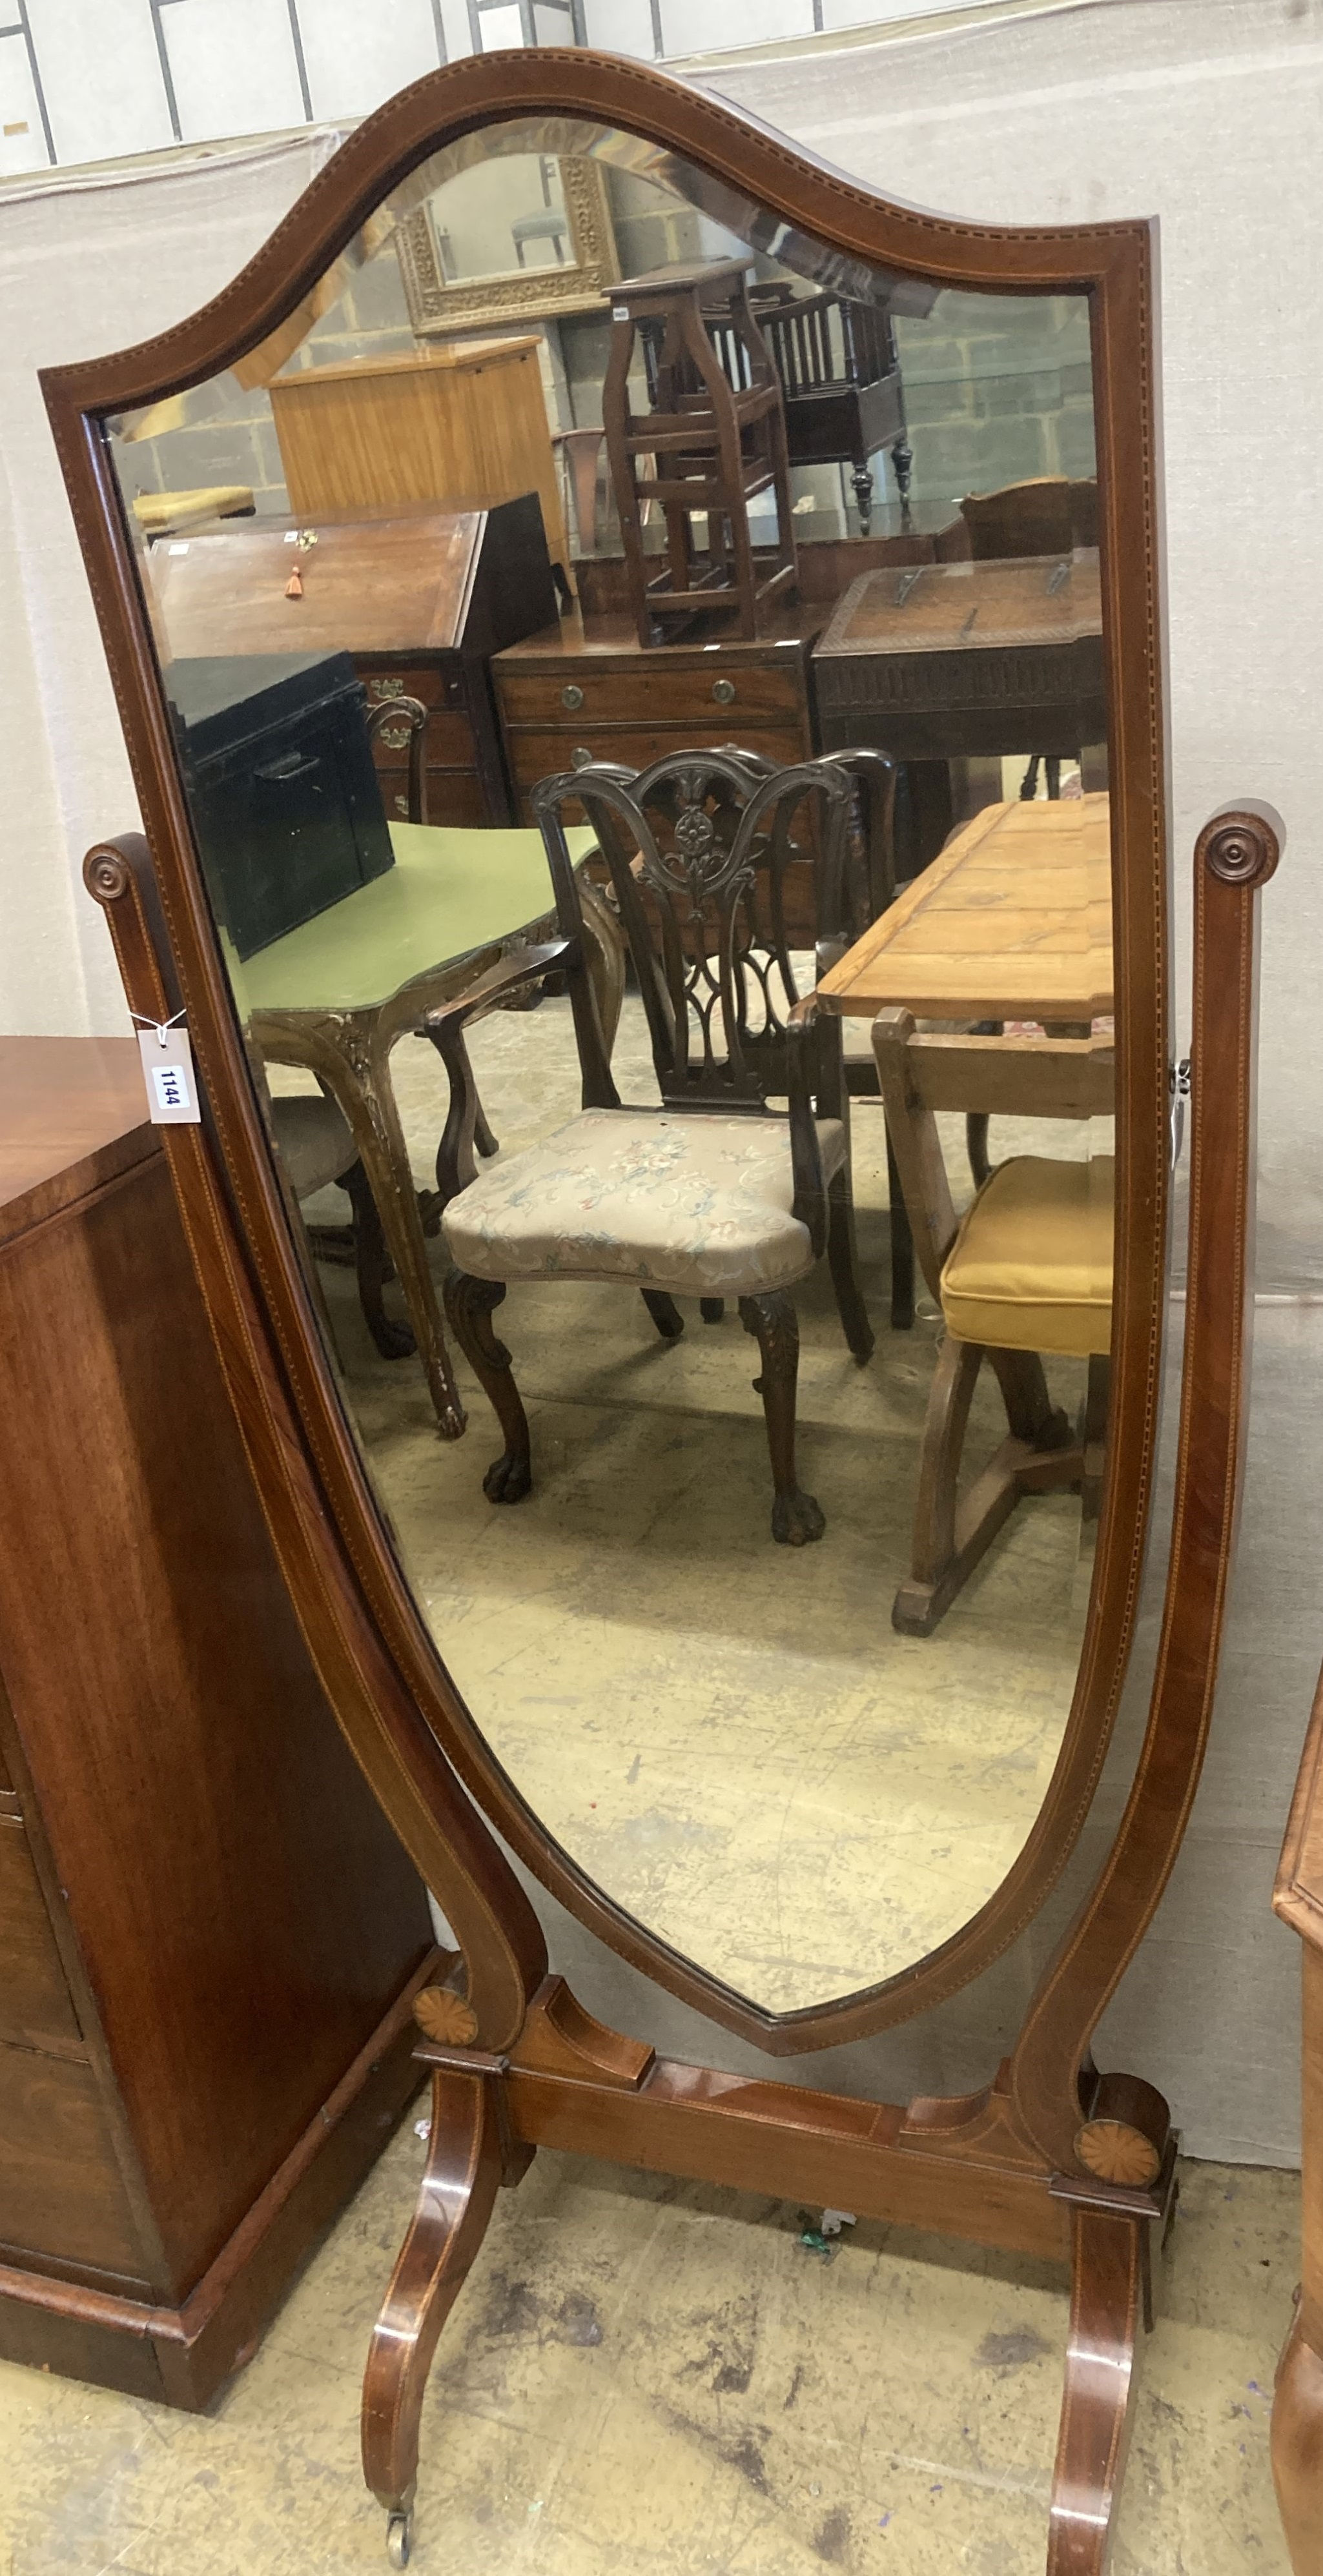 A large Edwardian inlaid mahogany shield shaped cheval mirror, width 80cm, height 177cm